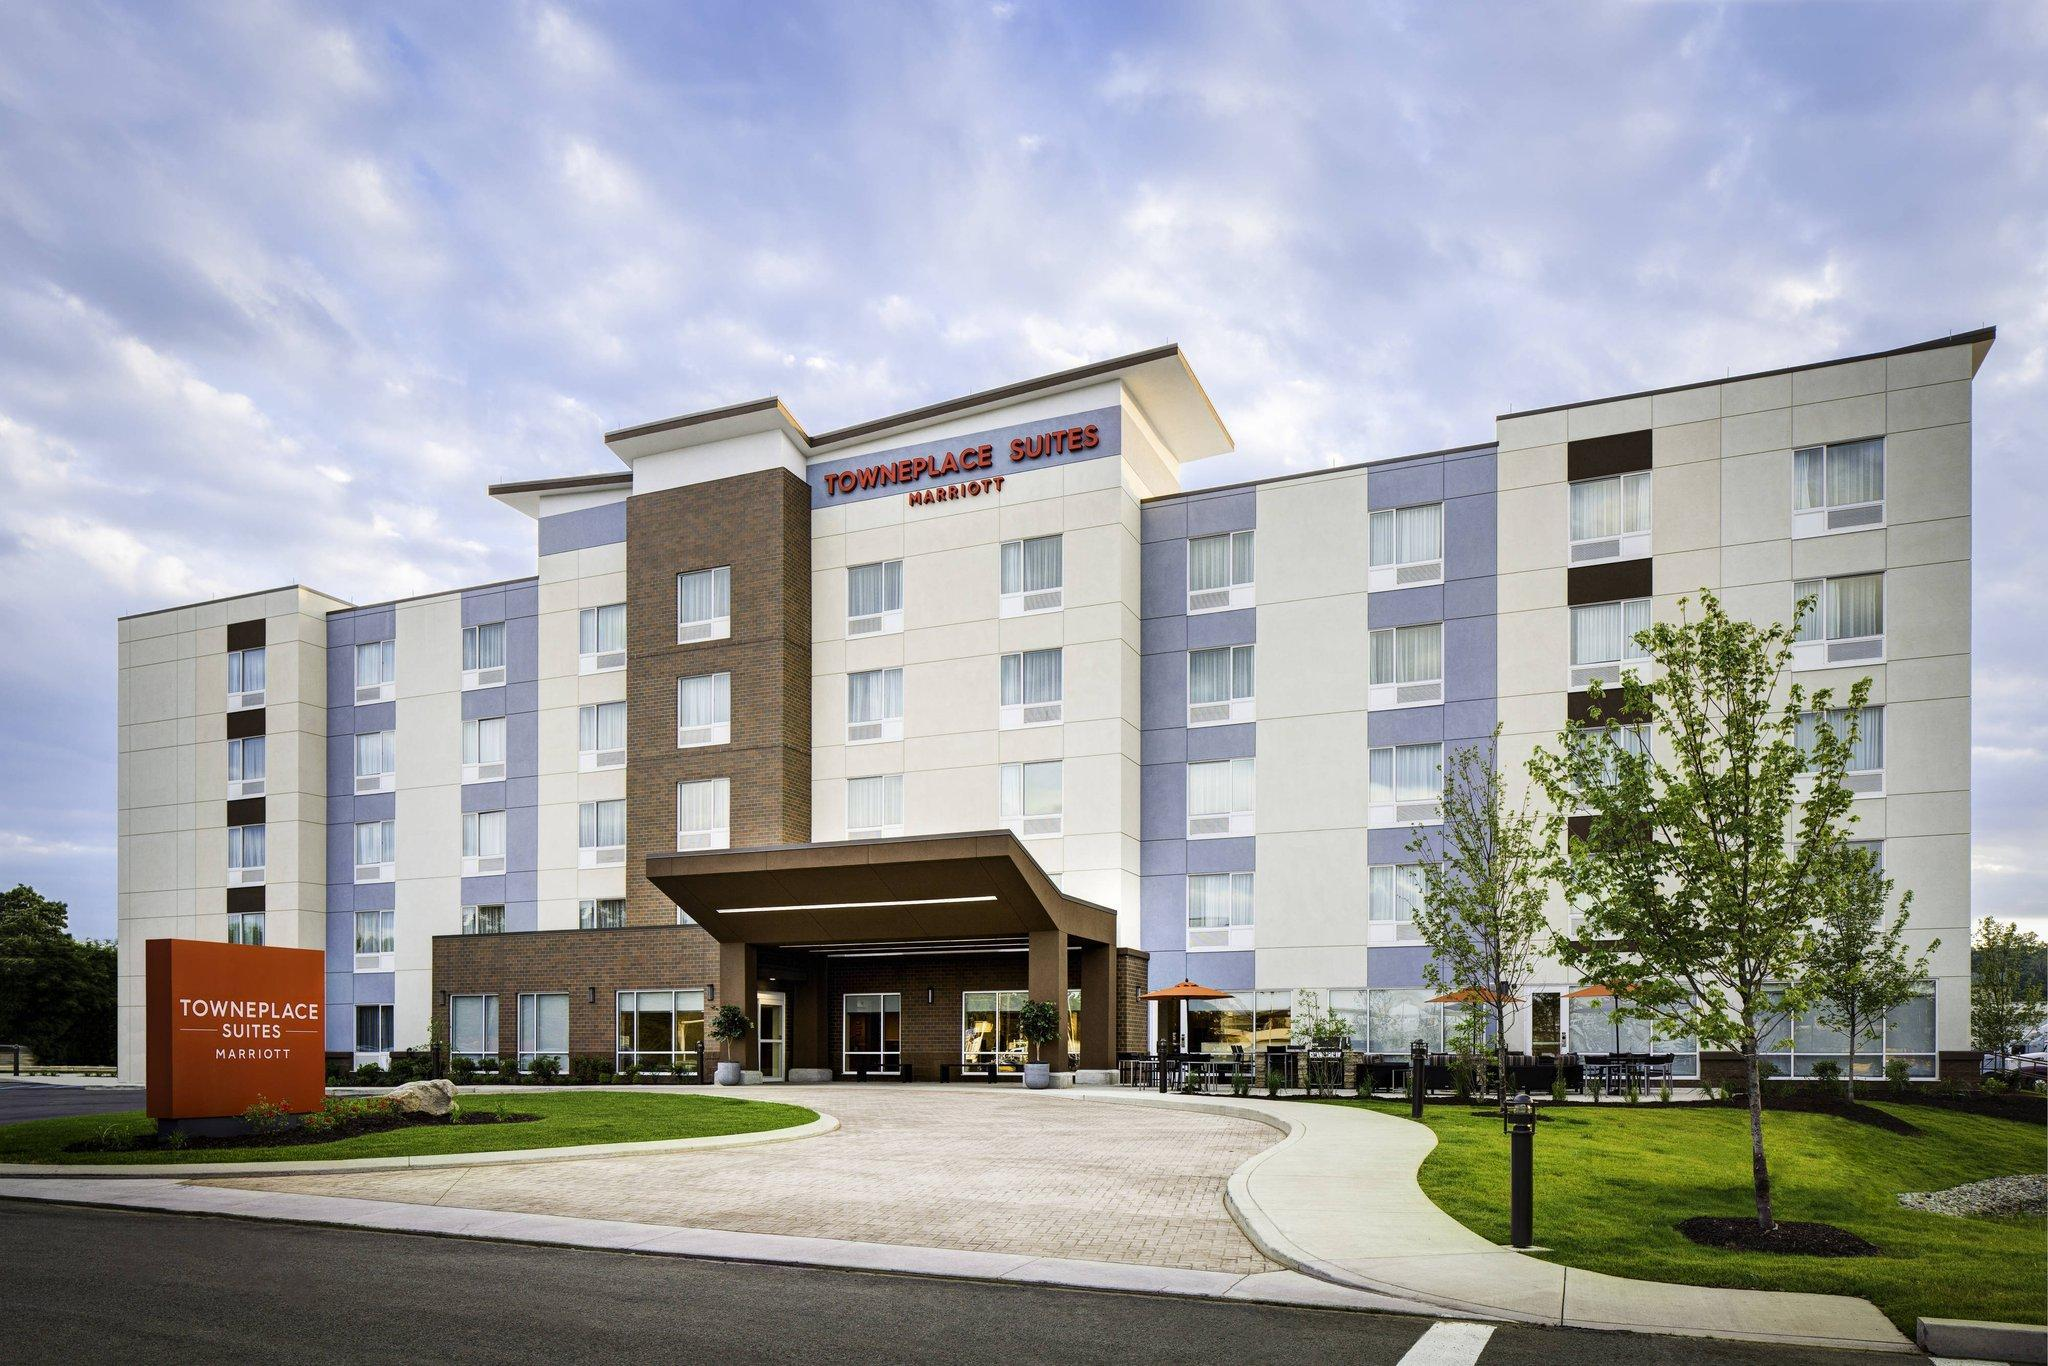 TownePlace Suites by Marriott Clarksville, Montgomery